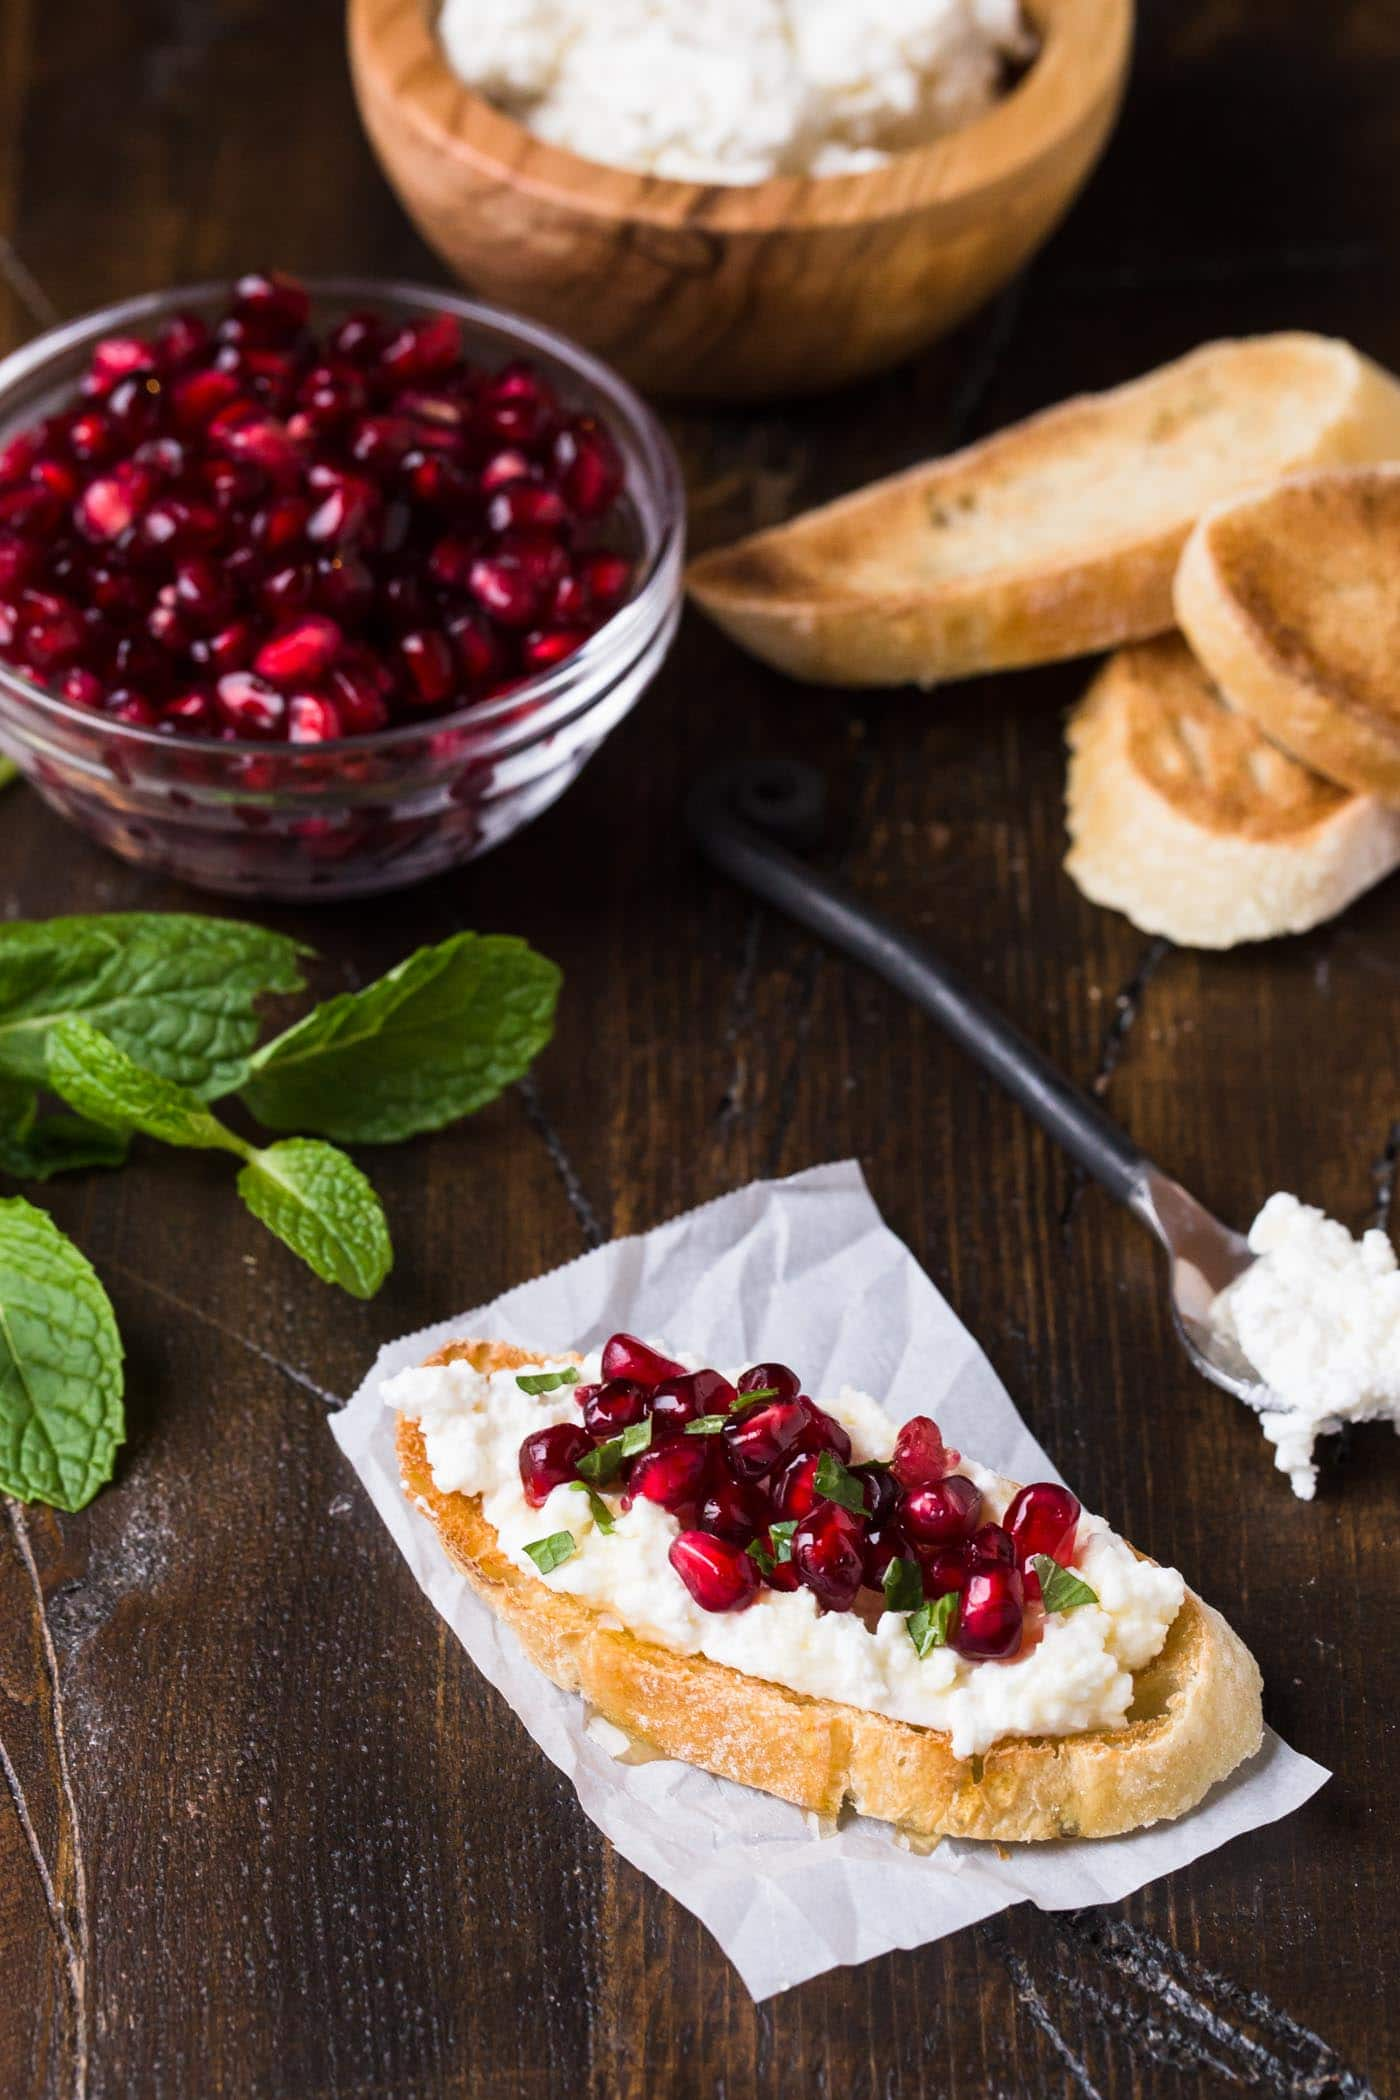 Need a quick and easy appetizer for a holiday party? Look no further than these festive Pomegranate Crostini with Ricotta and Mint!